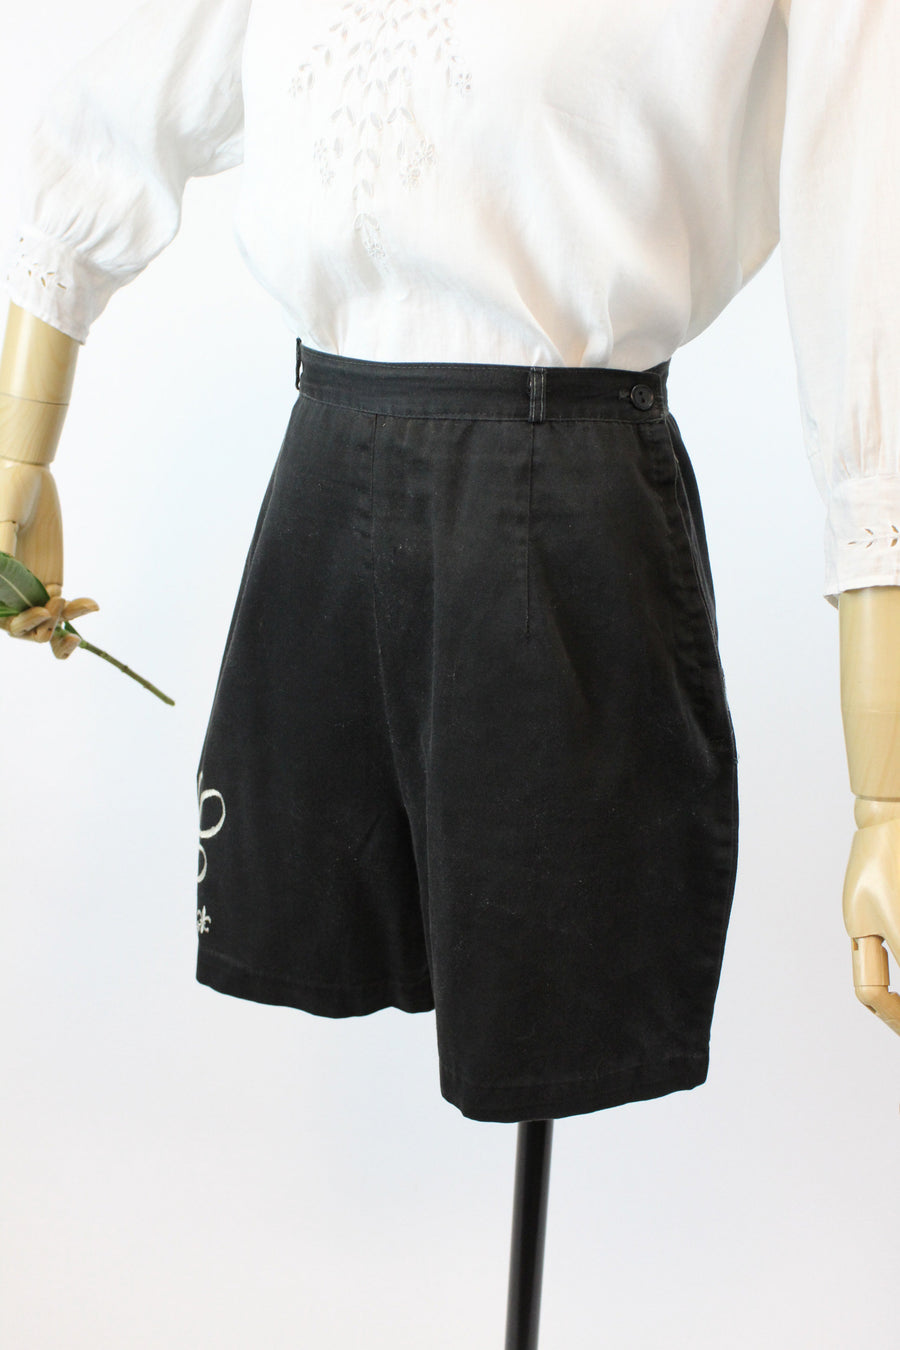 1950s cotton monogrammed shorts xs | vintage high waisted shorts